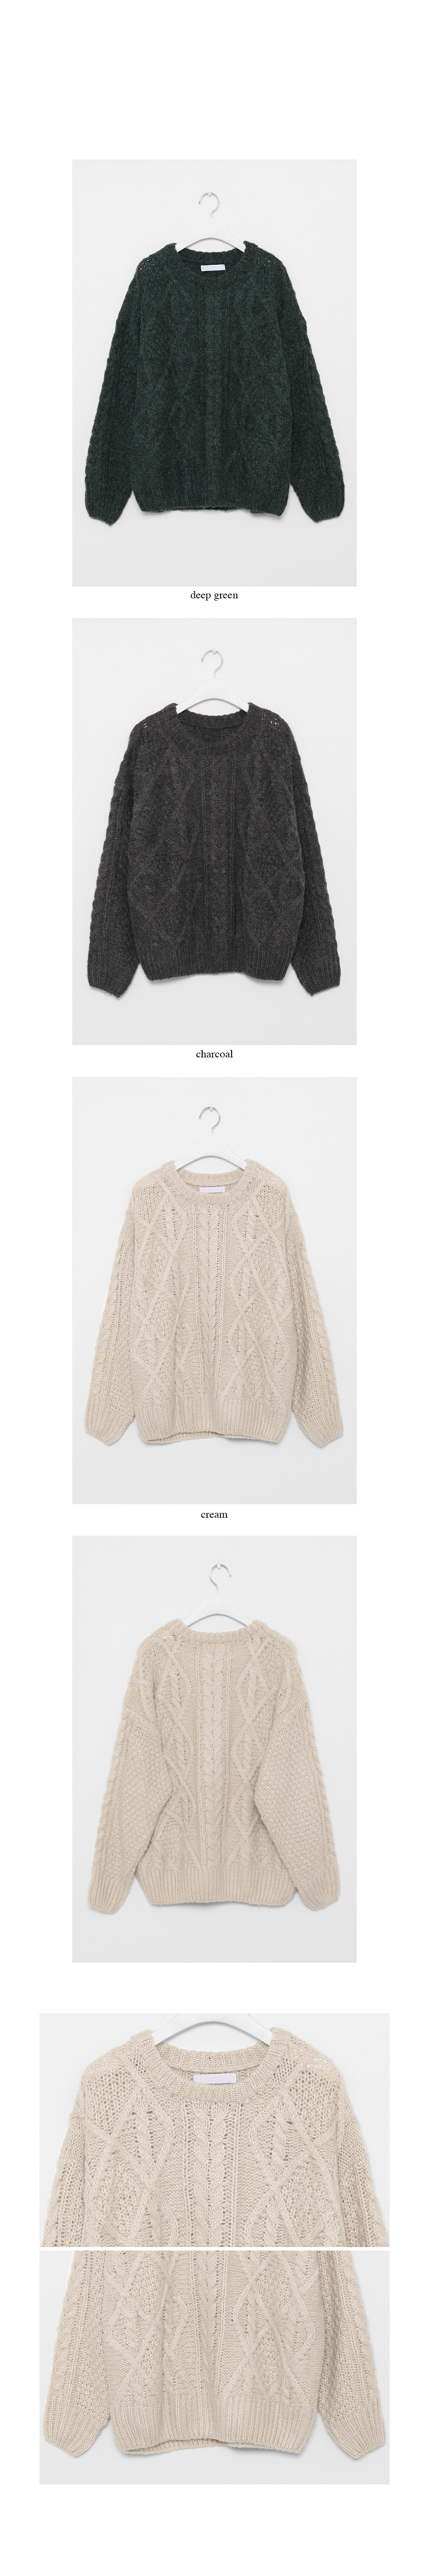 dia cable sweater